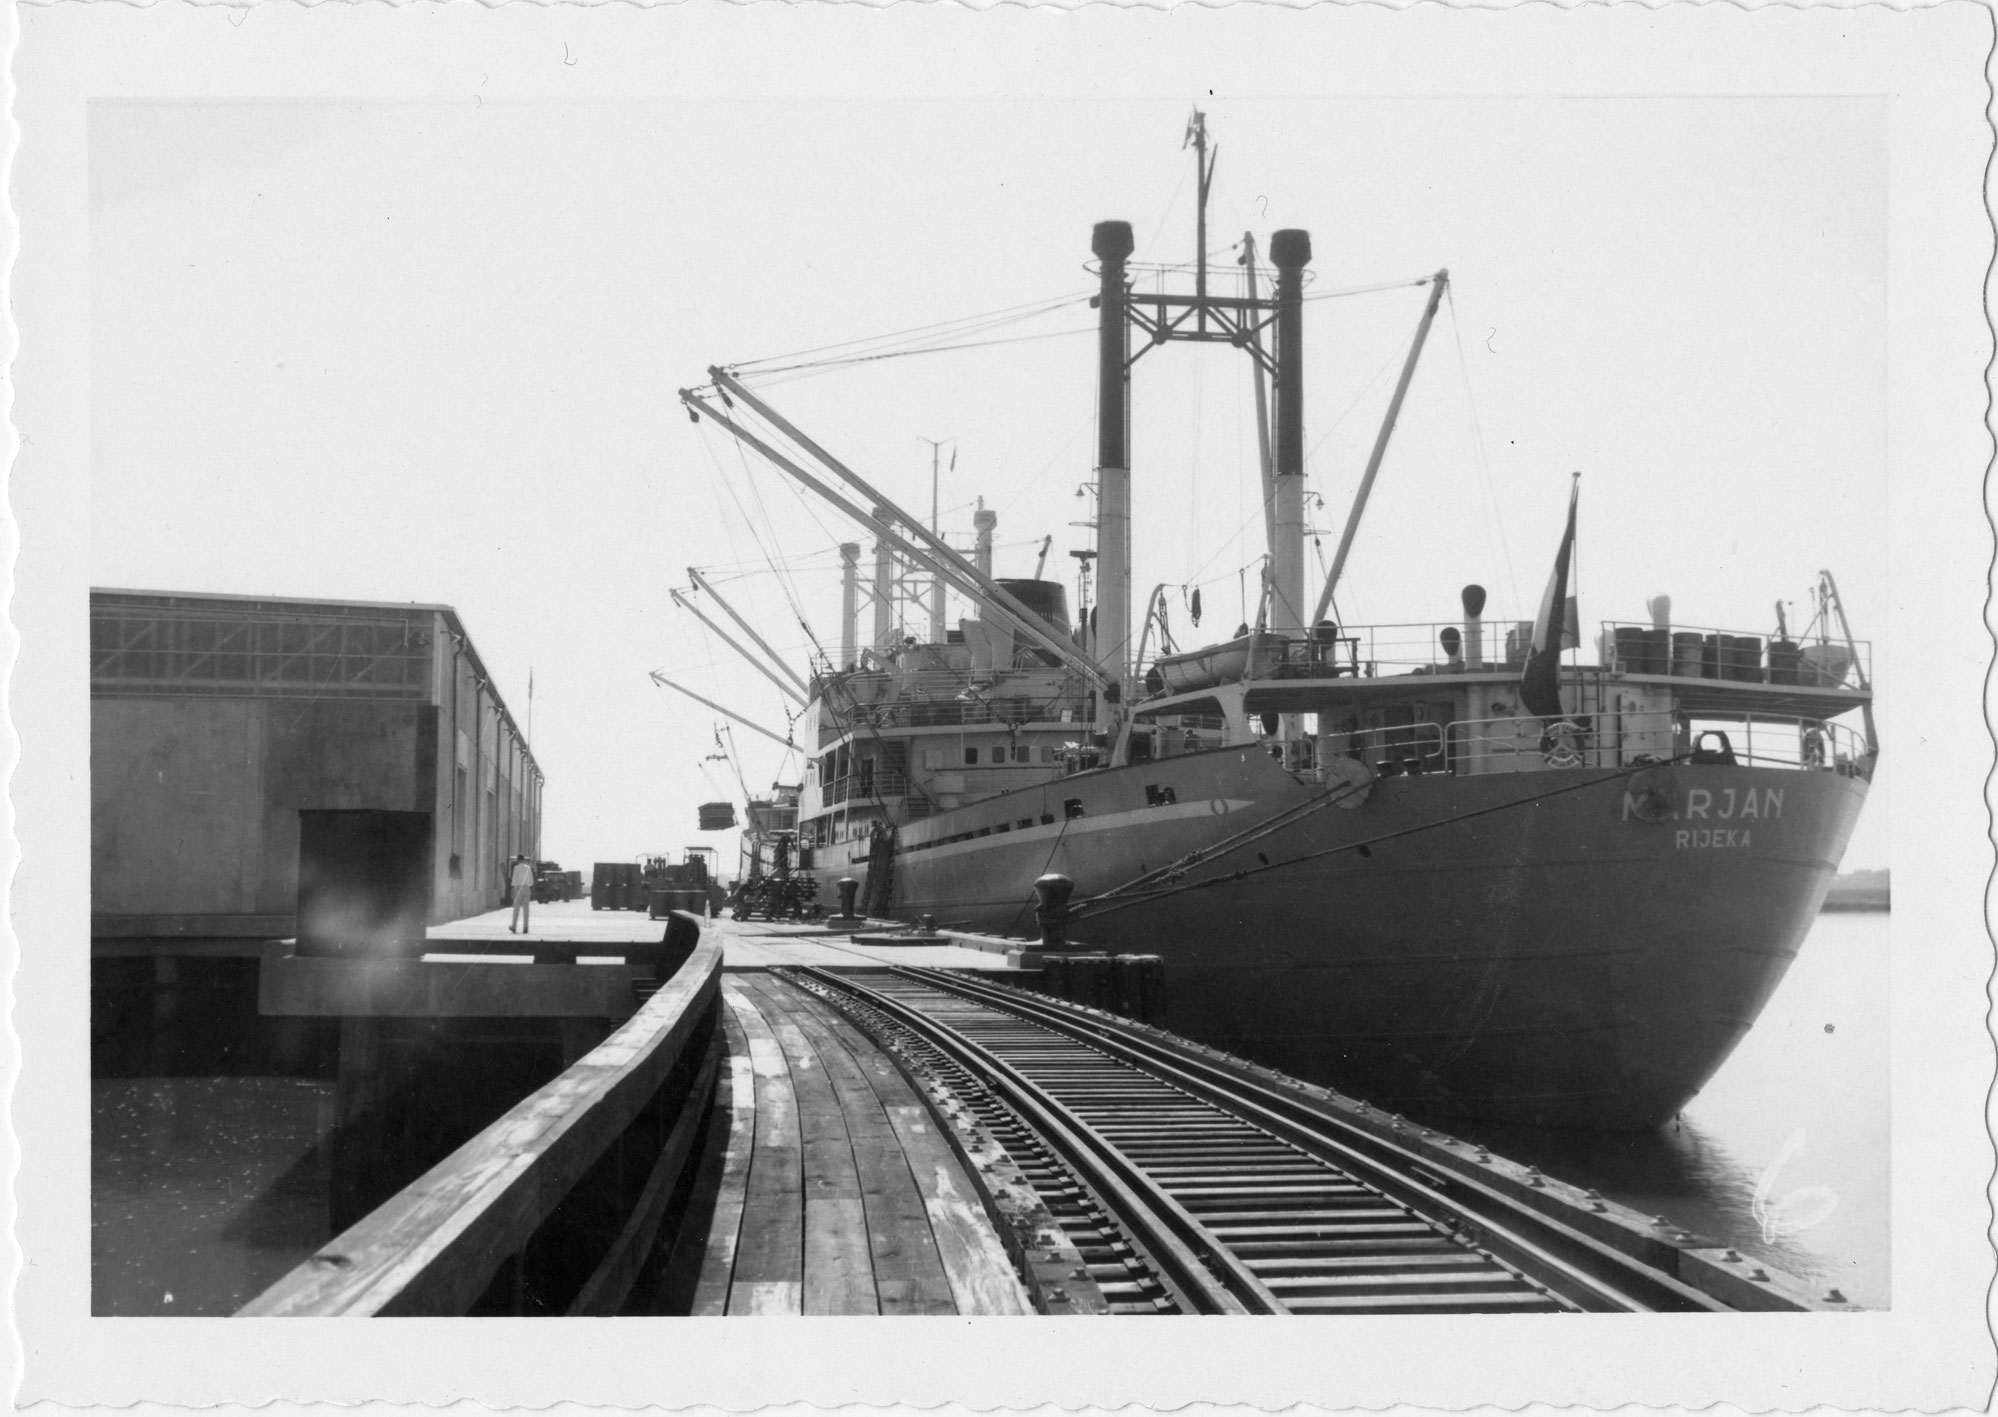 The Marjan docked at the Port of Port Royal; railroad tracks prominent in foreground